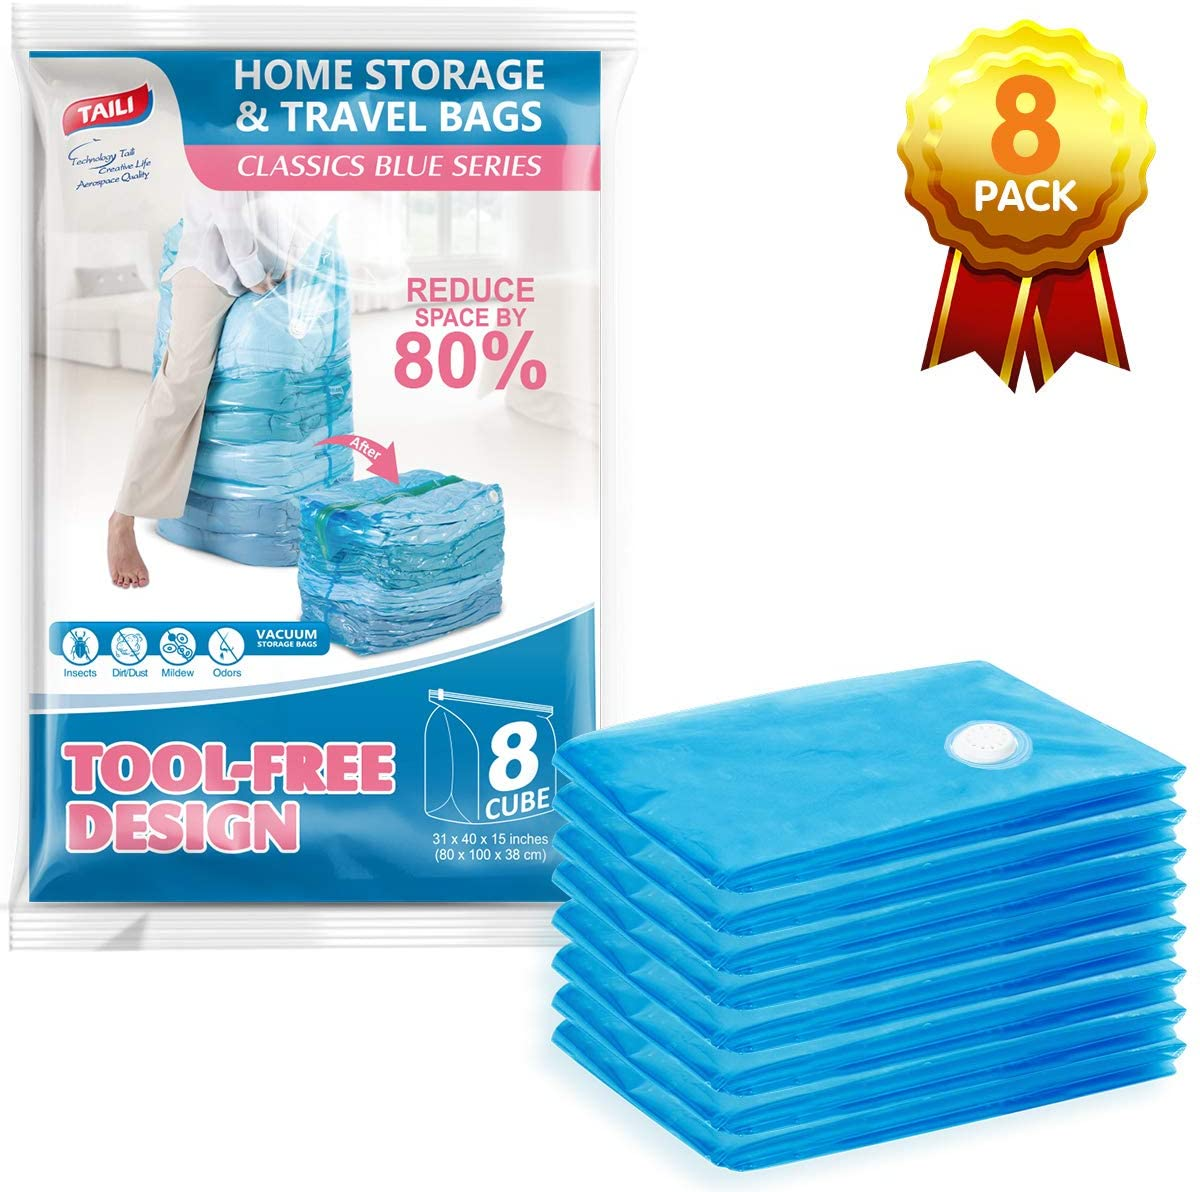 TAILI Vacuum Storage Space Saver Bags 8 Jumbo Cube Pack Vacuum Sealer Bags for Clothes Bedding Comforter Quilts Pillows-No Pump No Cap 80% Space Saving Design